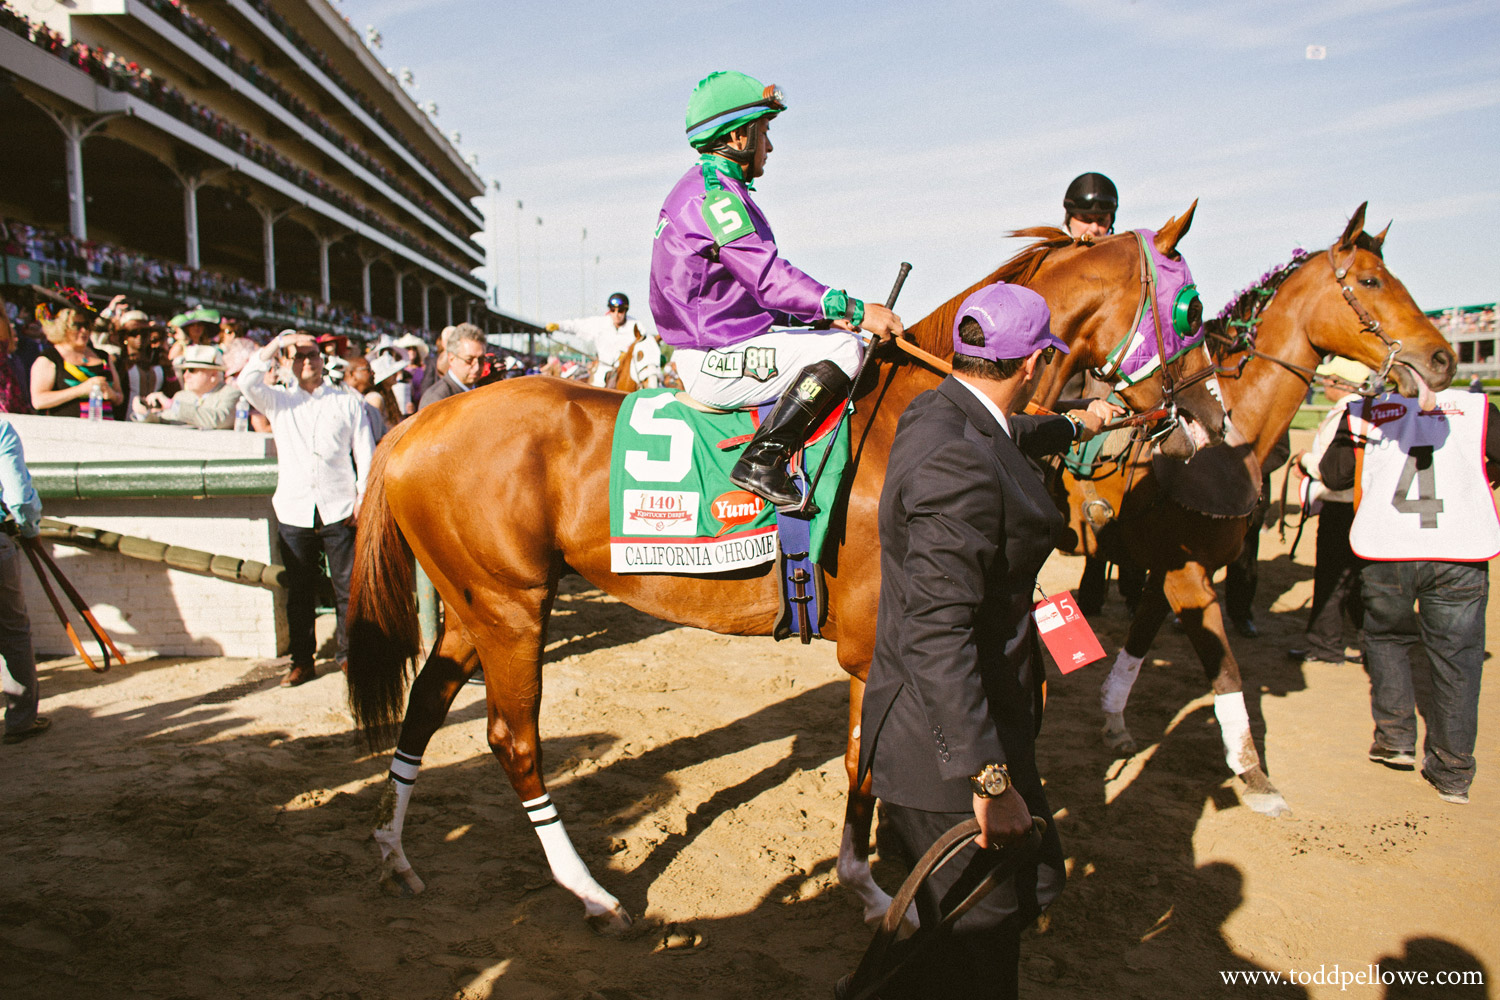 California Chrome entering track at Kentucky Derby 140